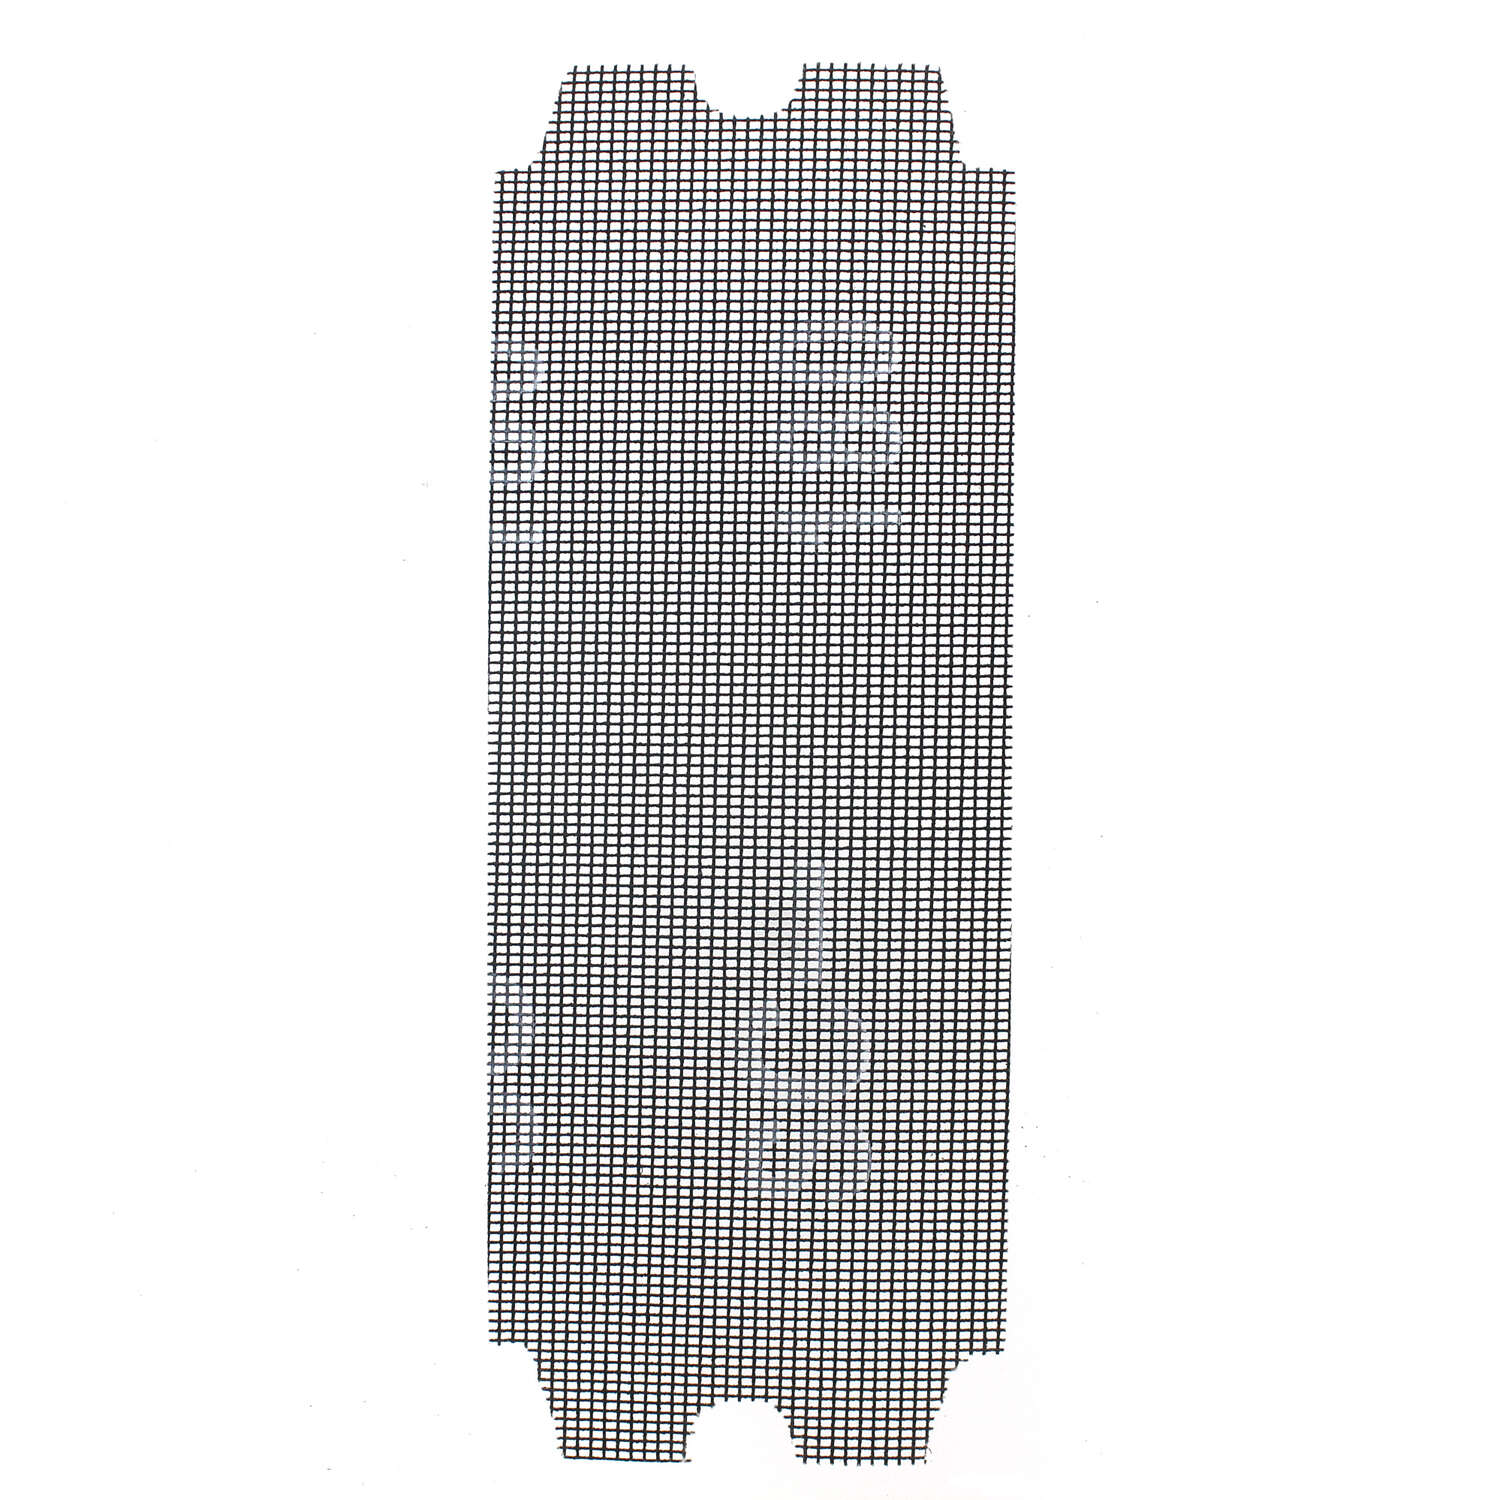 Gator  11-1/4 in. L x 4-1/4 in. W Very Fine  Silicon Carbide  1 pc. 180 Grit Drywall Sanding Screen